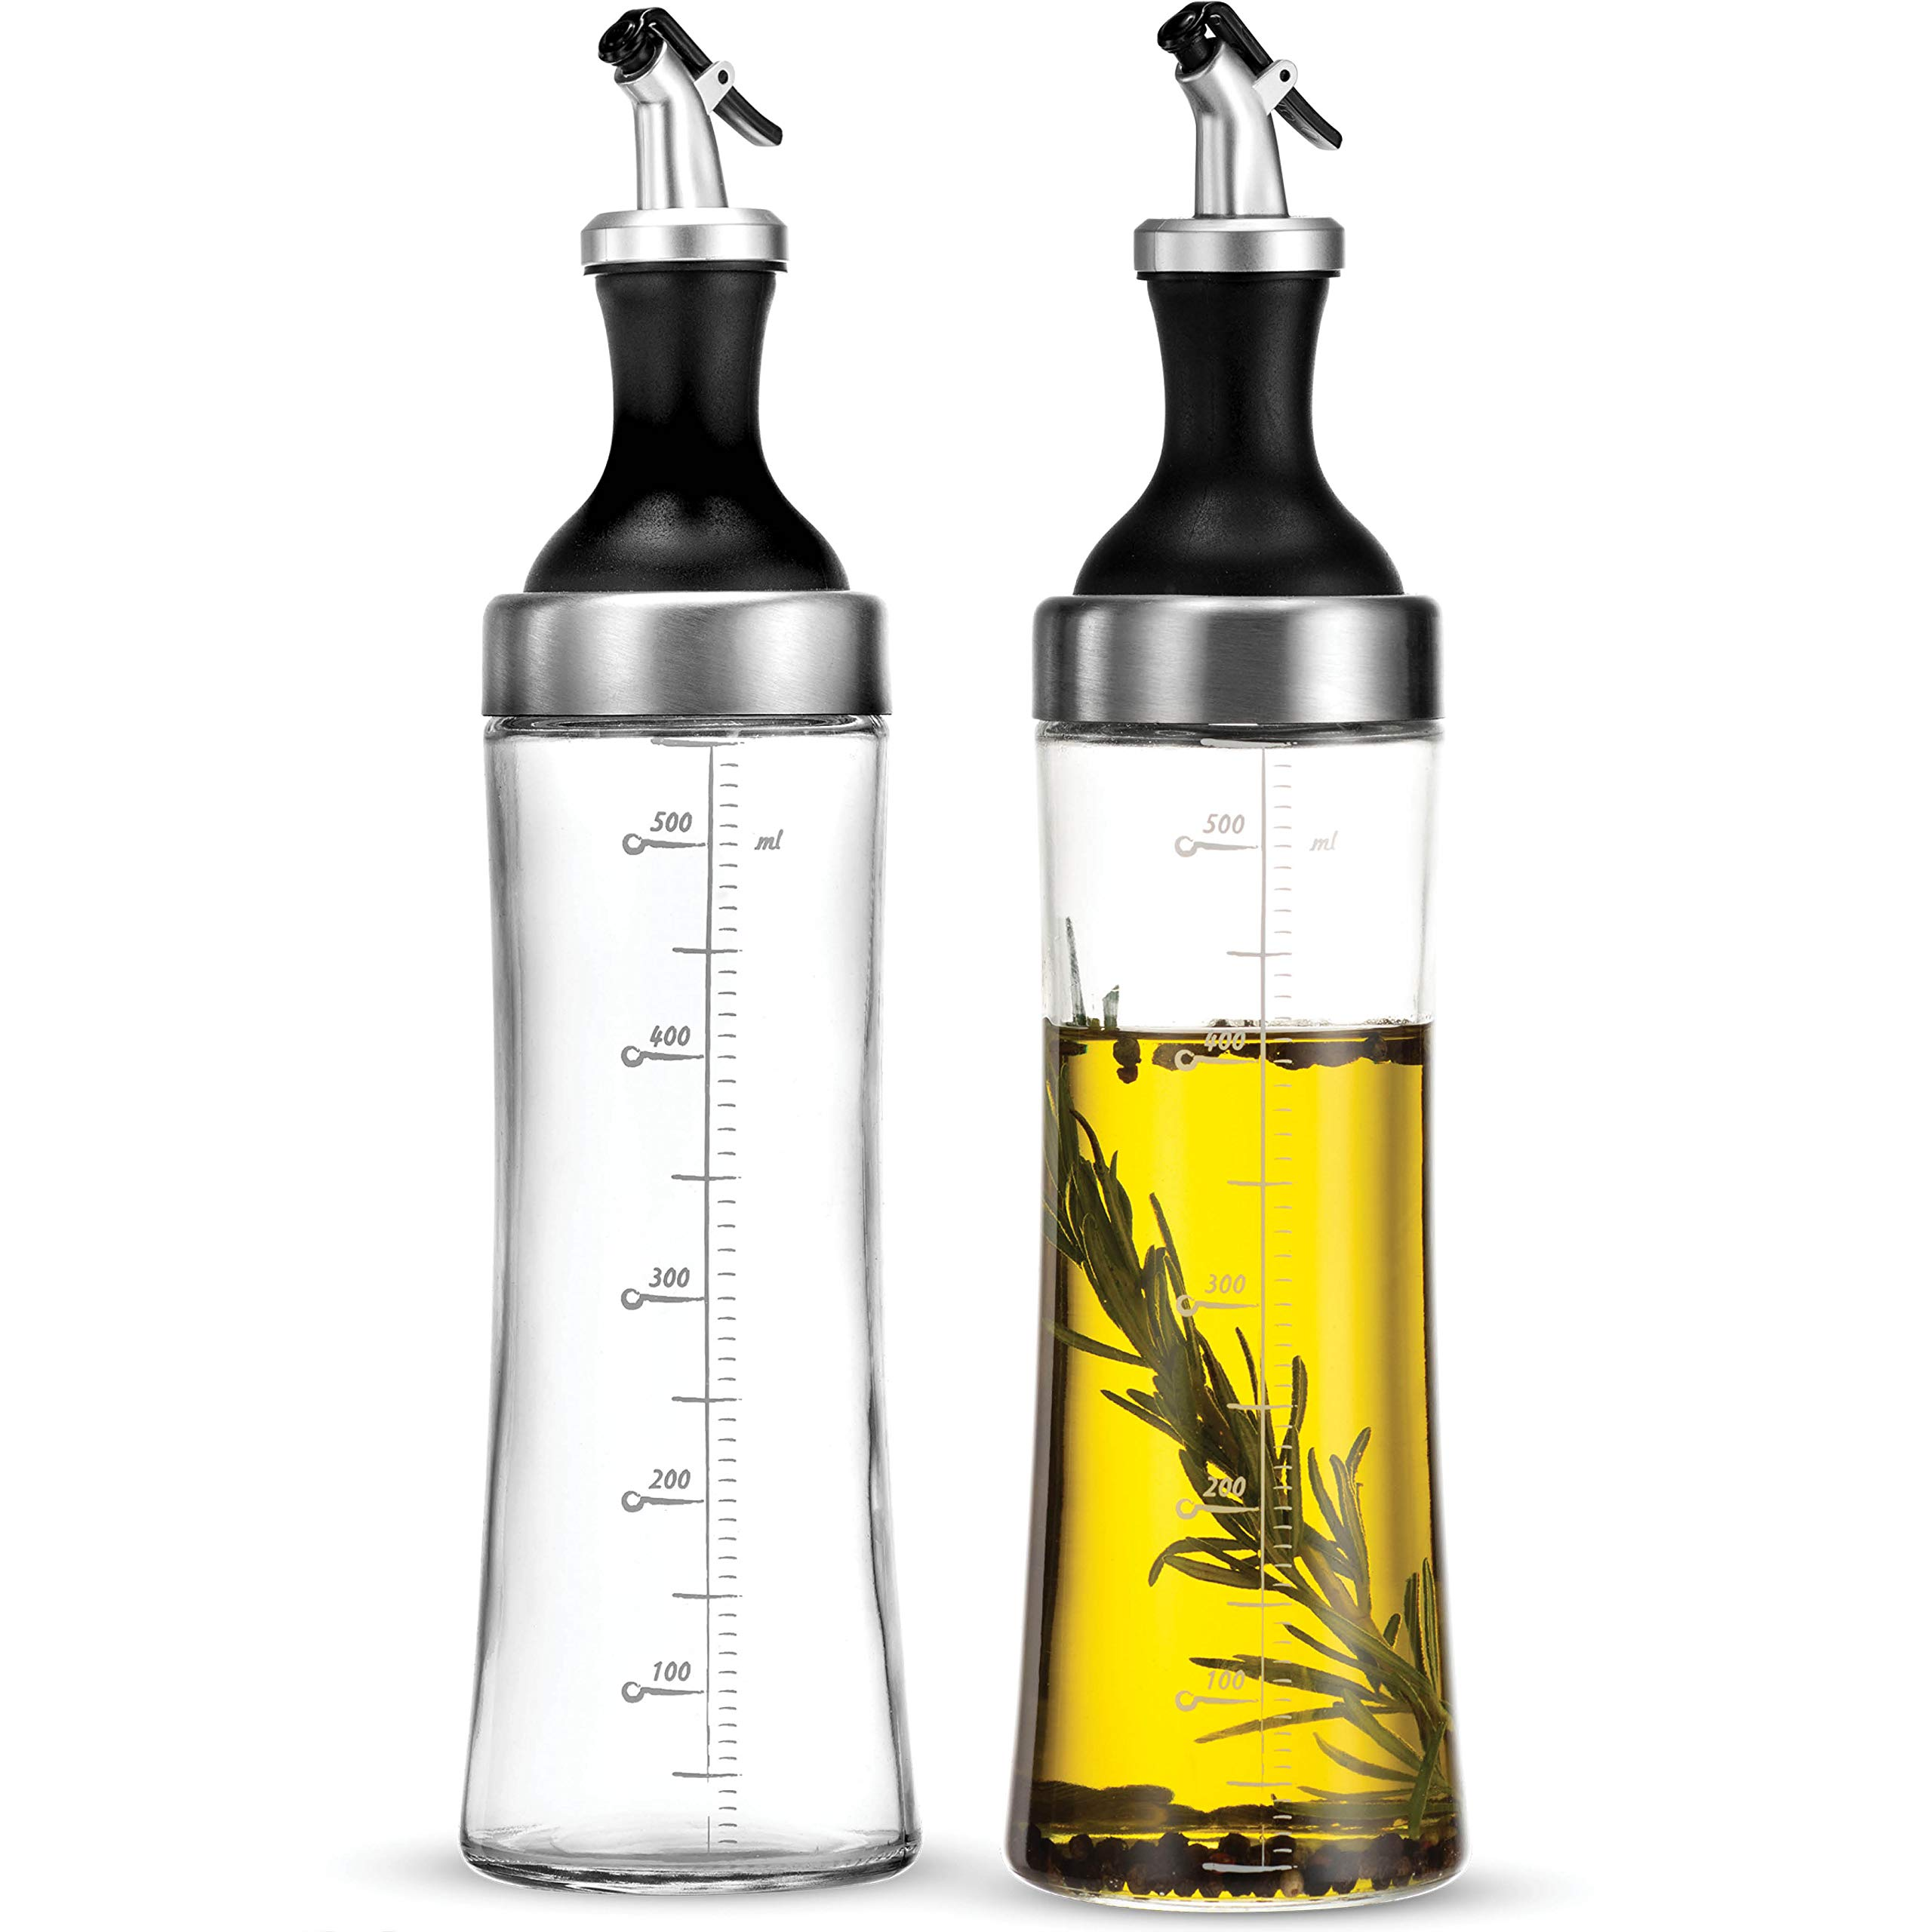 Superior Glass Oil and Vinegar Dispenser, (set of 2) Modern Olive Oil Dispenser, Wide Opening for Easy Refill and Cleaning, Clear Lead Free Glass Oil Bottle, BPA Free Pouring Spouts, 18 Oz. Cruet Set by FINEDINE